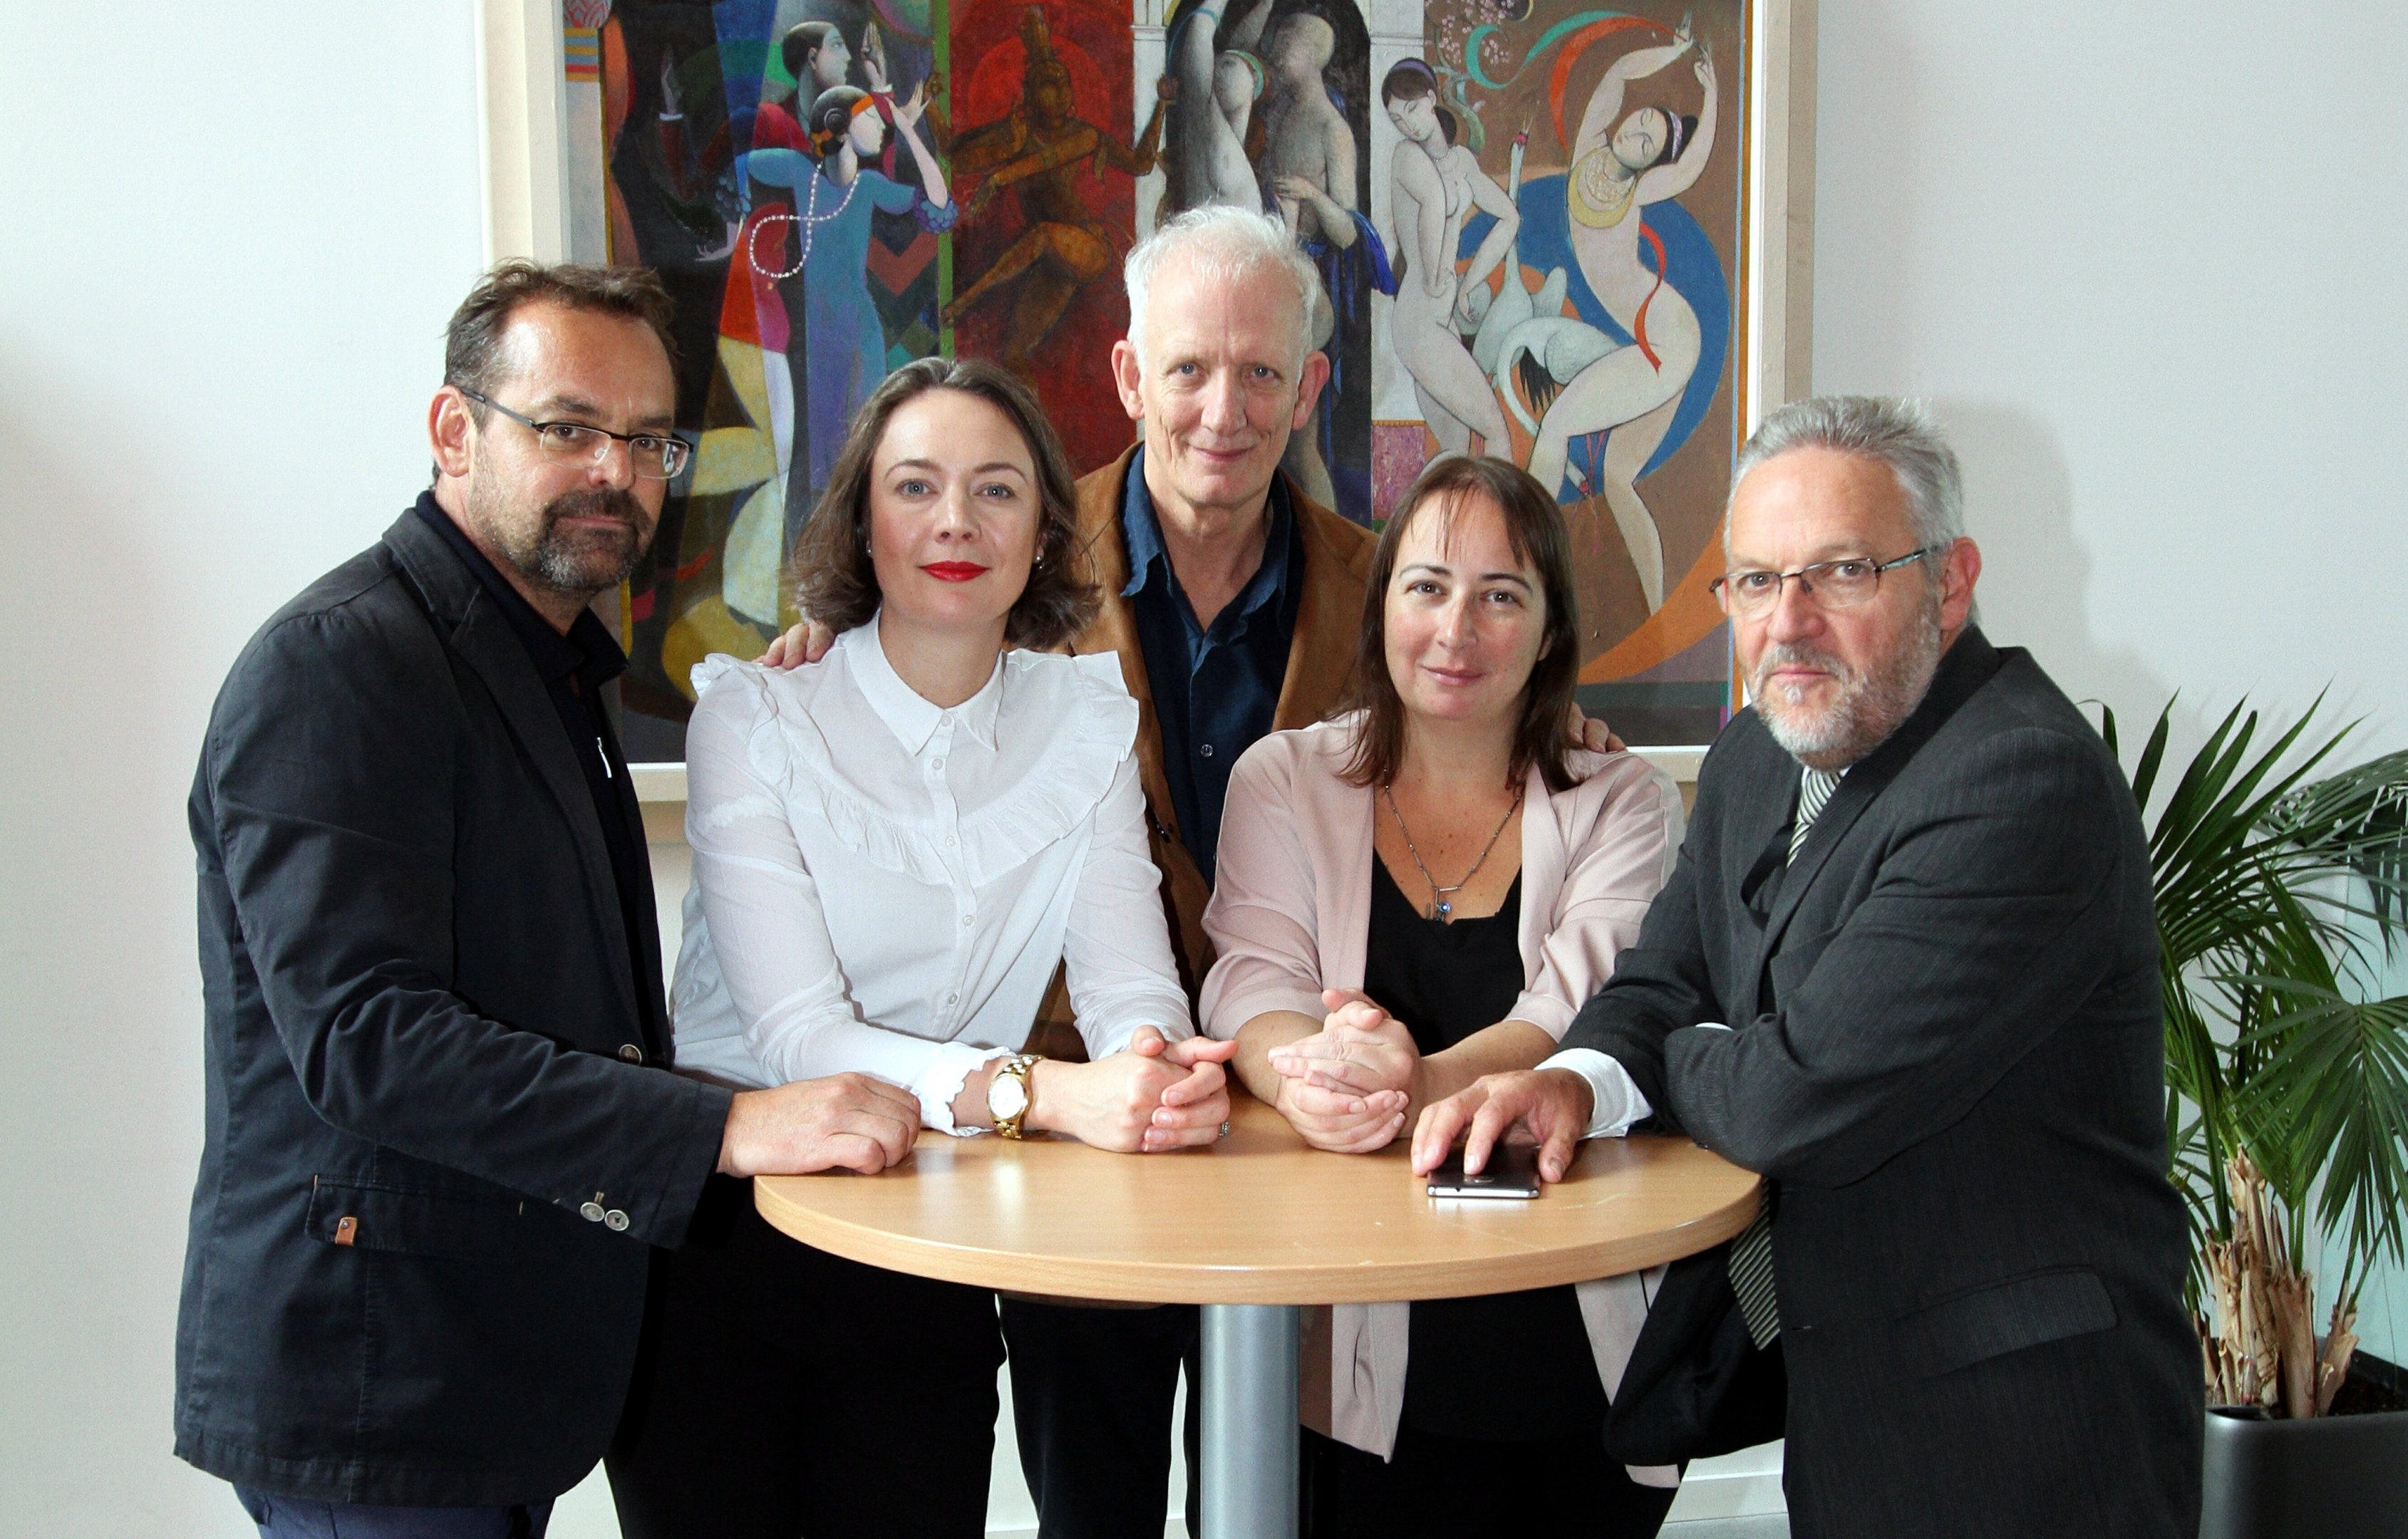 Symposium speaker Werner Schrempf of La Strada Festival, Austria, Beth Bate DCA director and symposium moderator, Neil Butler, UZ Arts Scotland, Anna Day and Stewart Murdoch, director of Leisure and Culture Dundee.